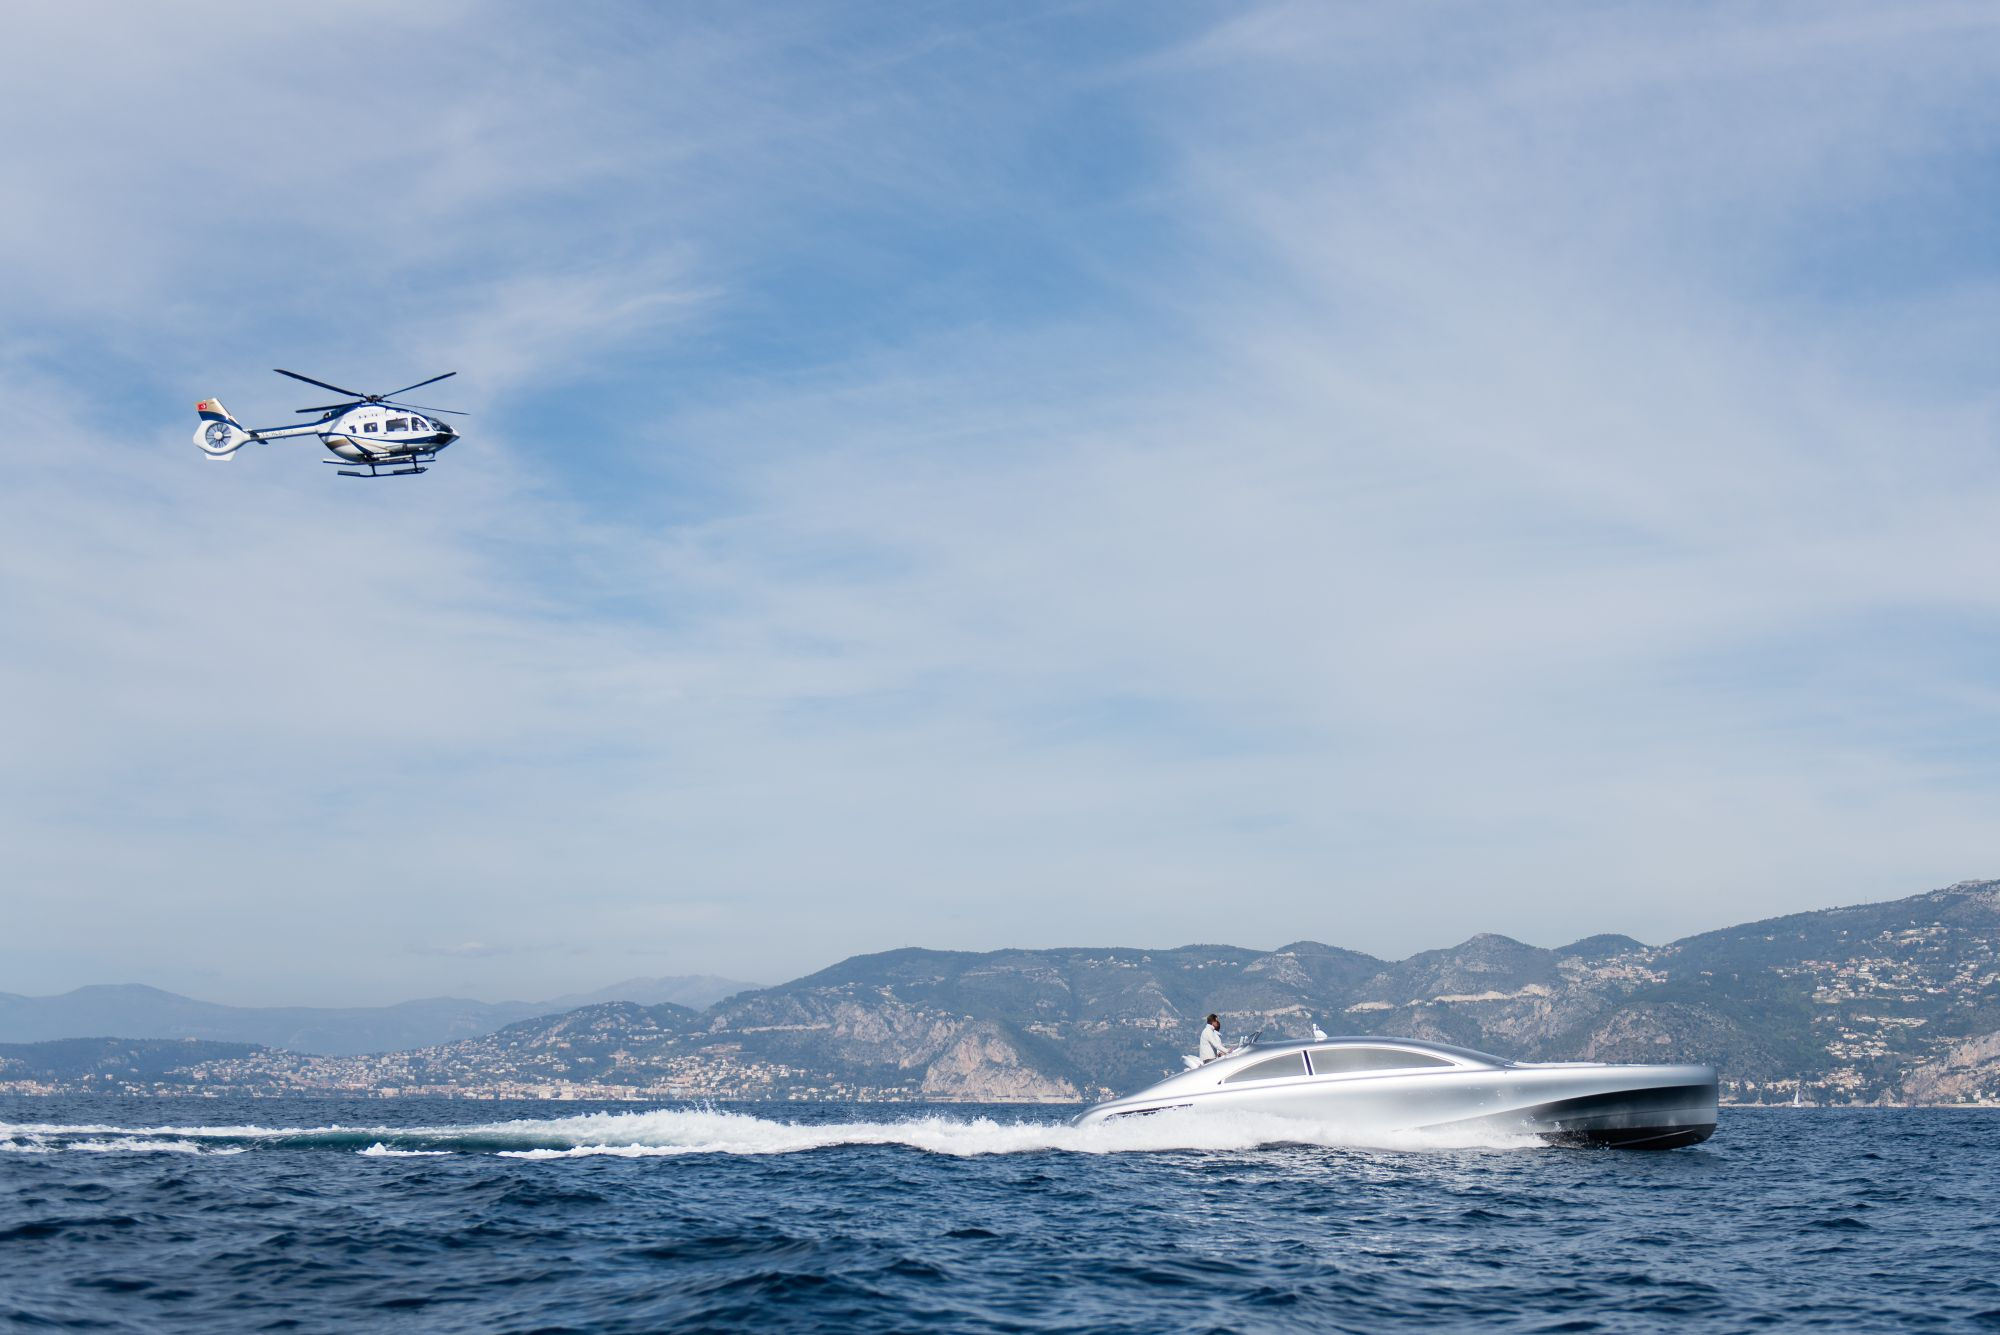 "Weltpremiere an der Côte d'Azur: Vor Nizza startete die von Mercedes-Benz Style gestaltete Luxus-Motoryacht ""Arrow460–Granturismo"" von Silver Arrows Marine auf ihre Jungfernfahrt. World premiere on the Côte d'Azur: The luxury motor yacht ""Arrow460–Granturismo"" designed by Mercedes-Benz Style and constructed by Silver Arrows Marine has embarked on its maiden voyage off the coast of Nice."